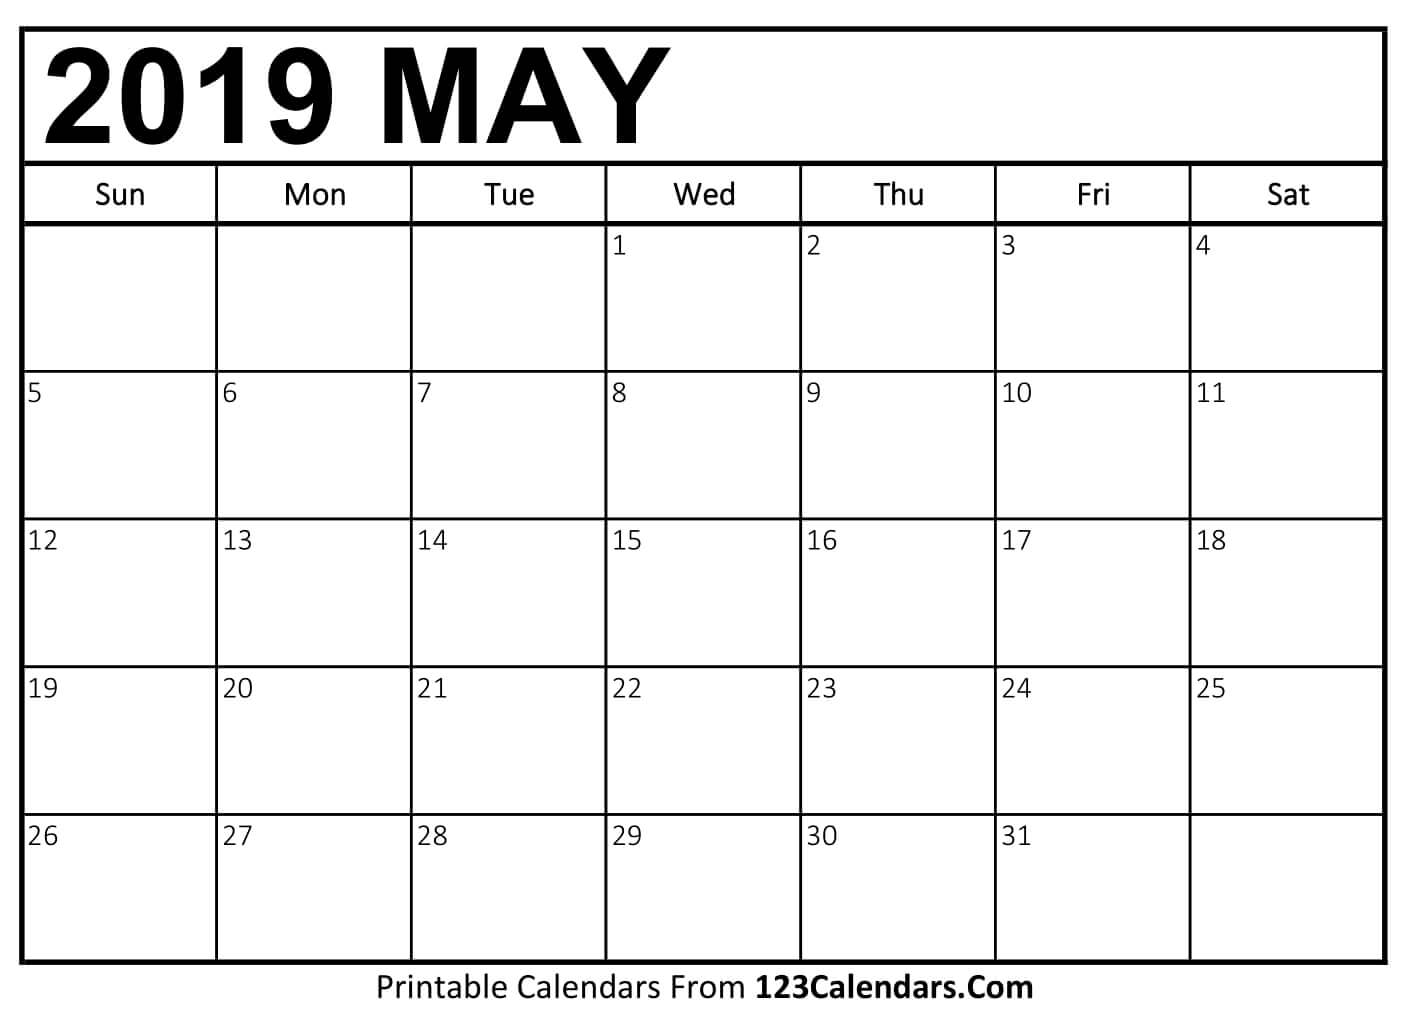 May Calendar 2019 Free Printable Calendar Templates And Holidays